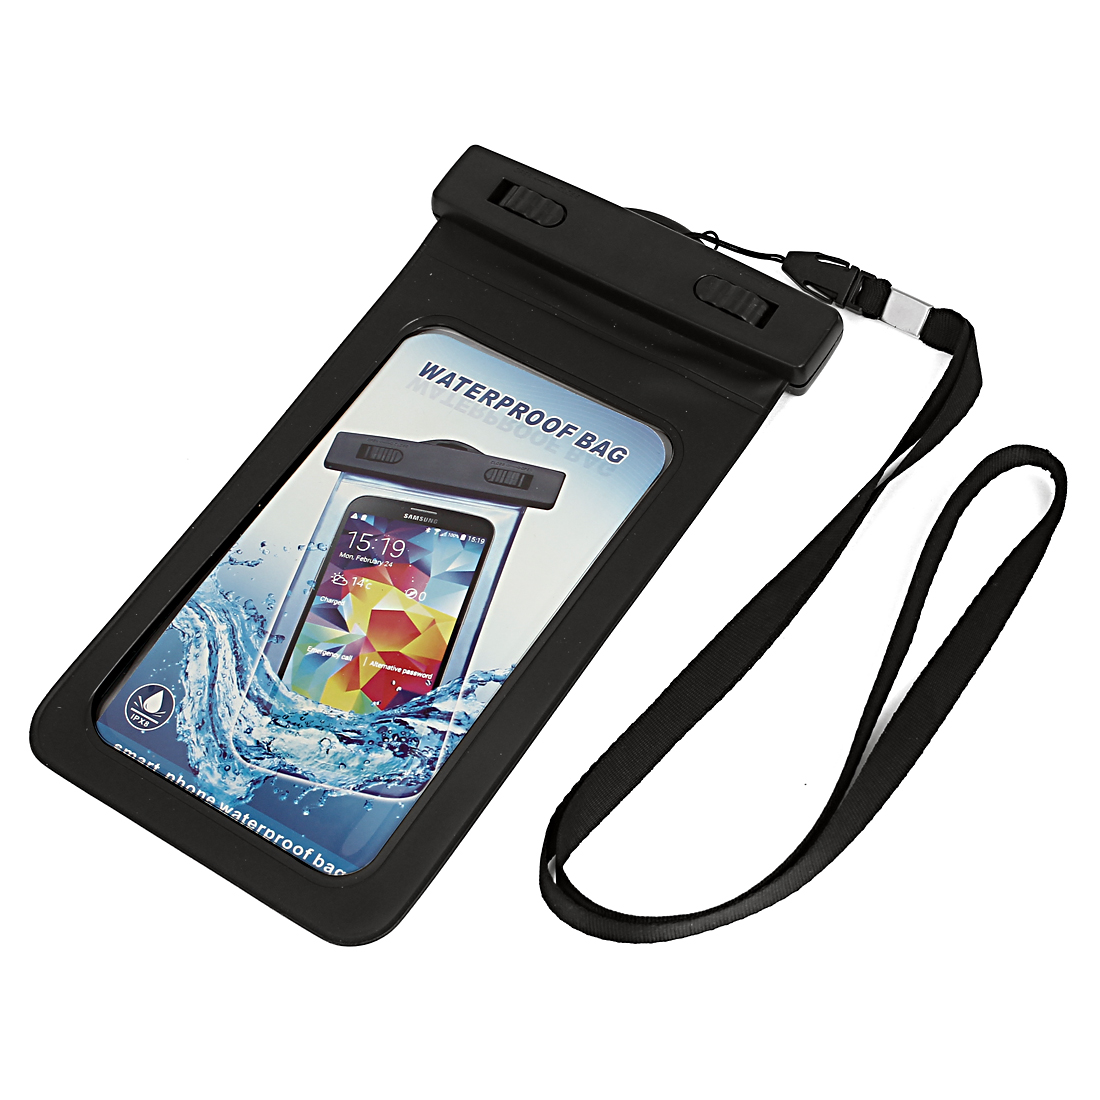 "Waterproof Bag Holder Pouch Black for 5.5"" Mobile Phone w Neck Strap"